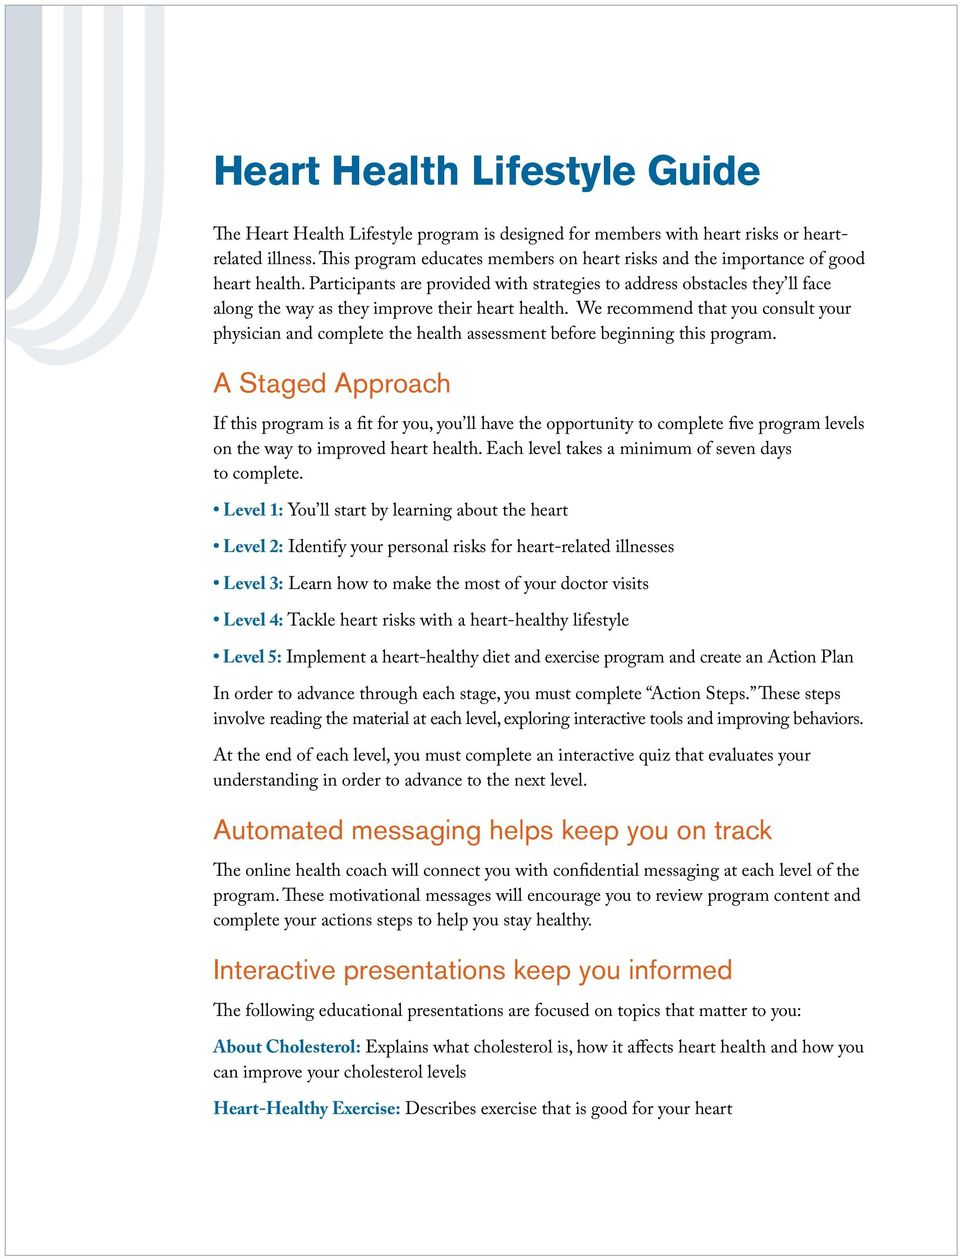 Participants are provided with strategies to address obstacles they ll face along the way as they improve their heart health.